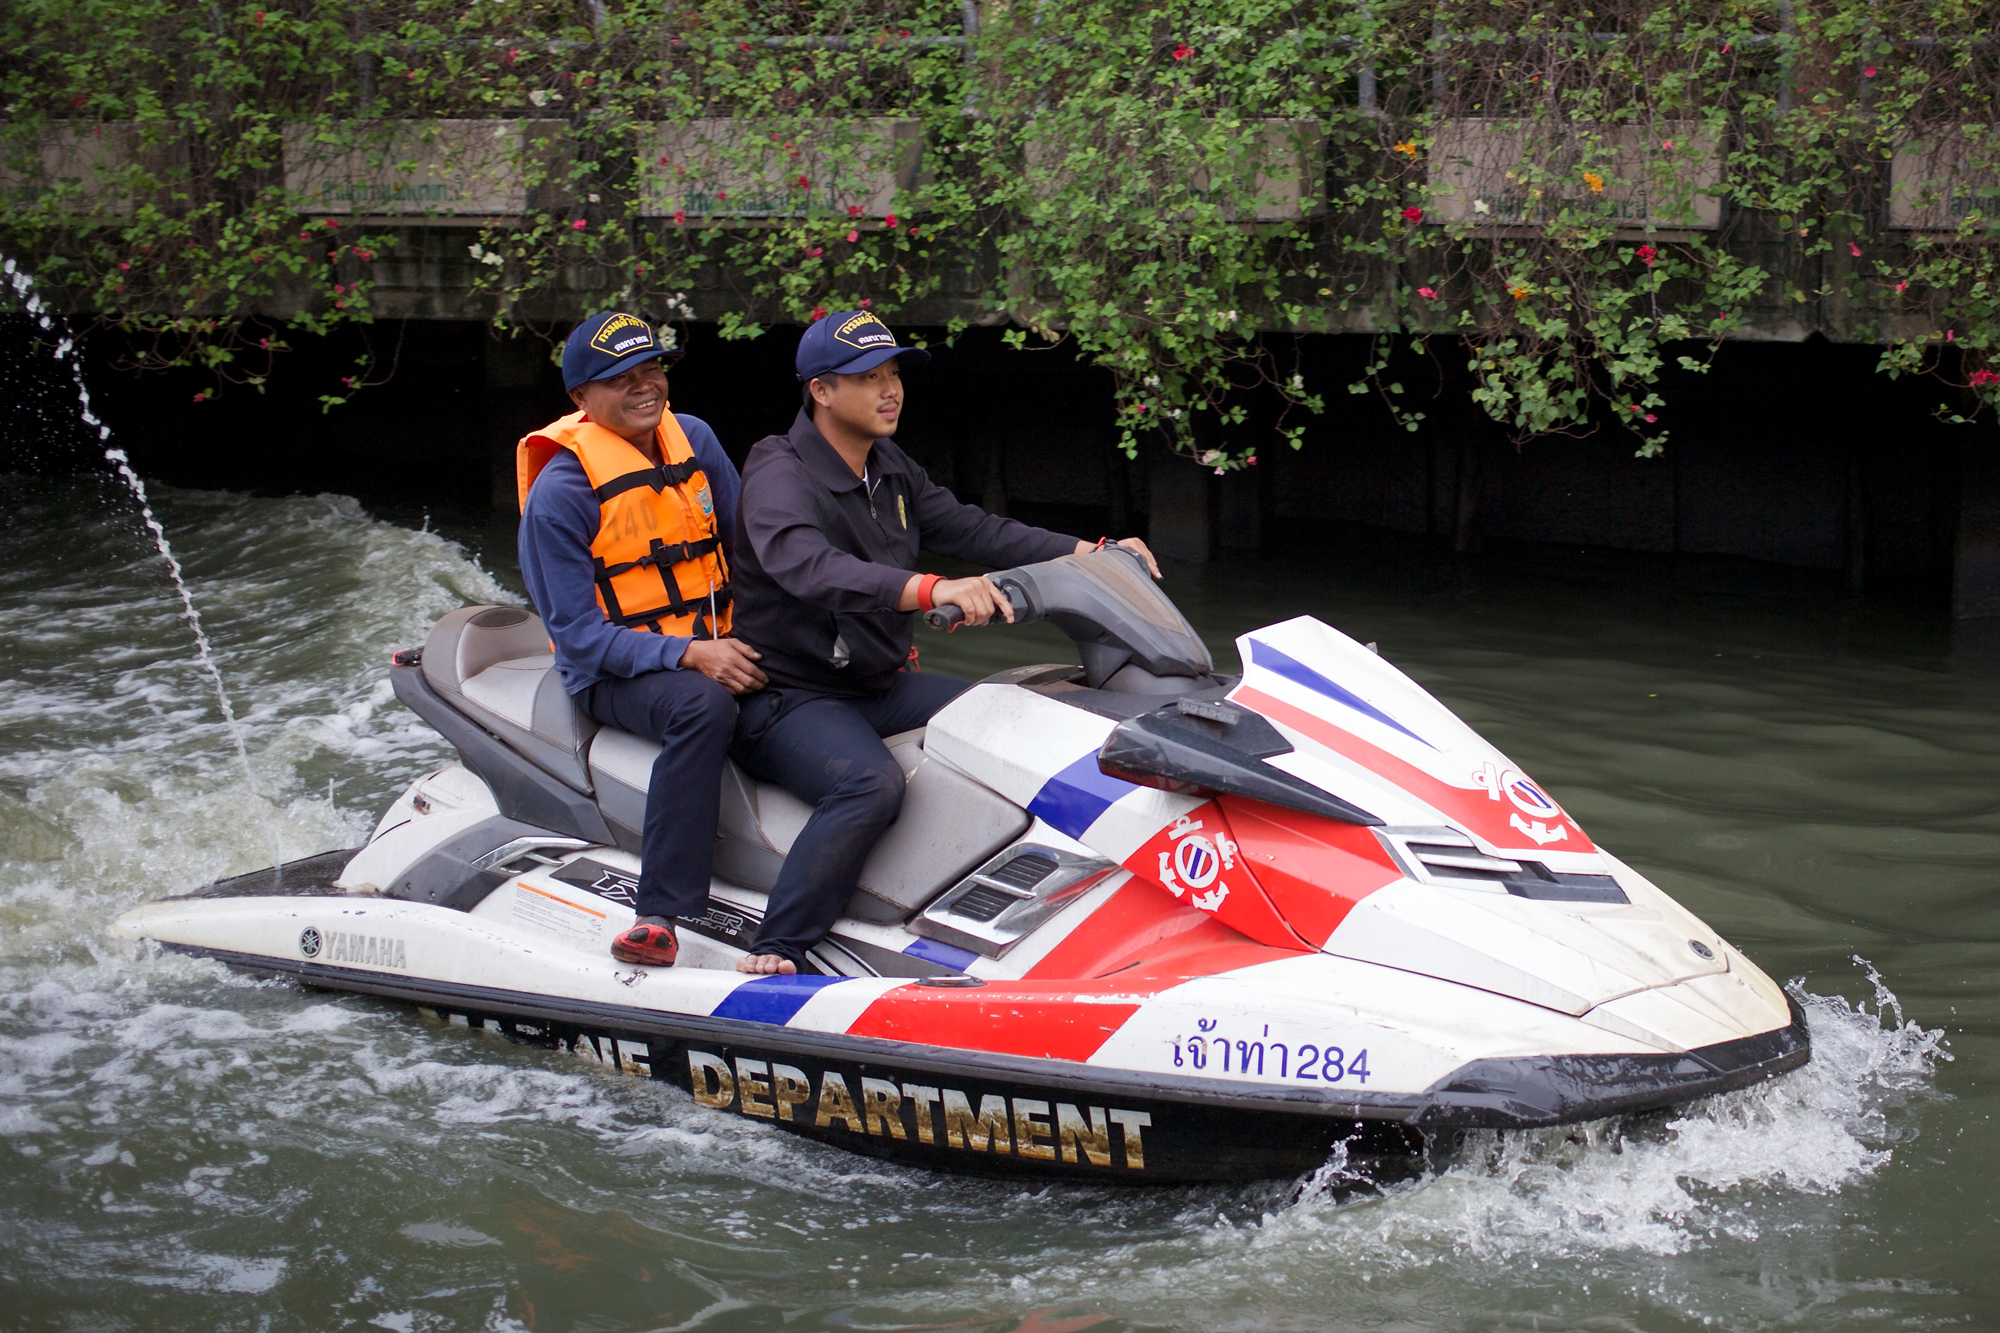 Two officials from the marine department on a jet ski